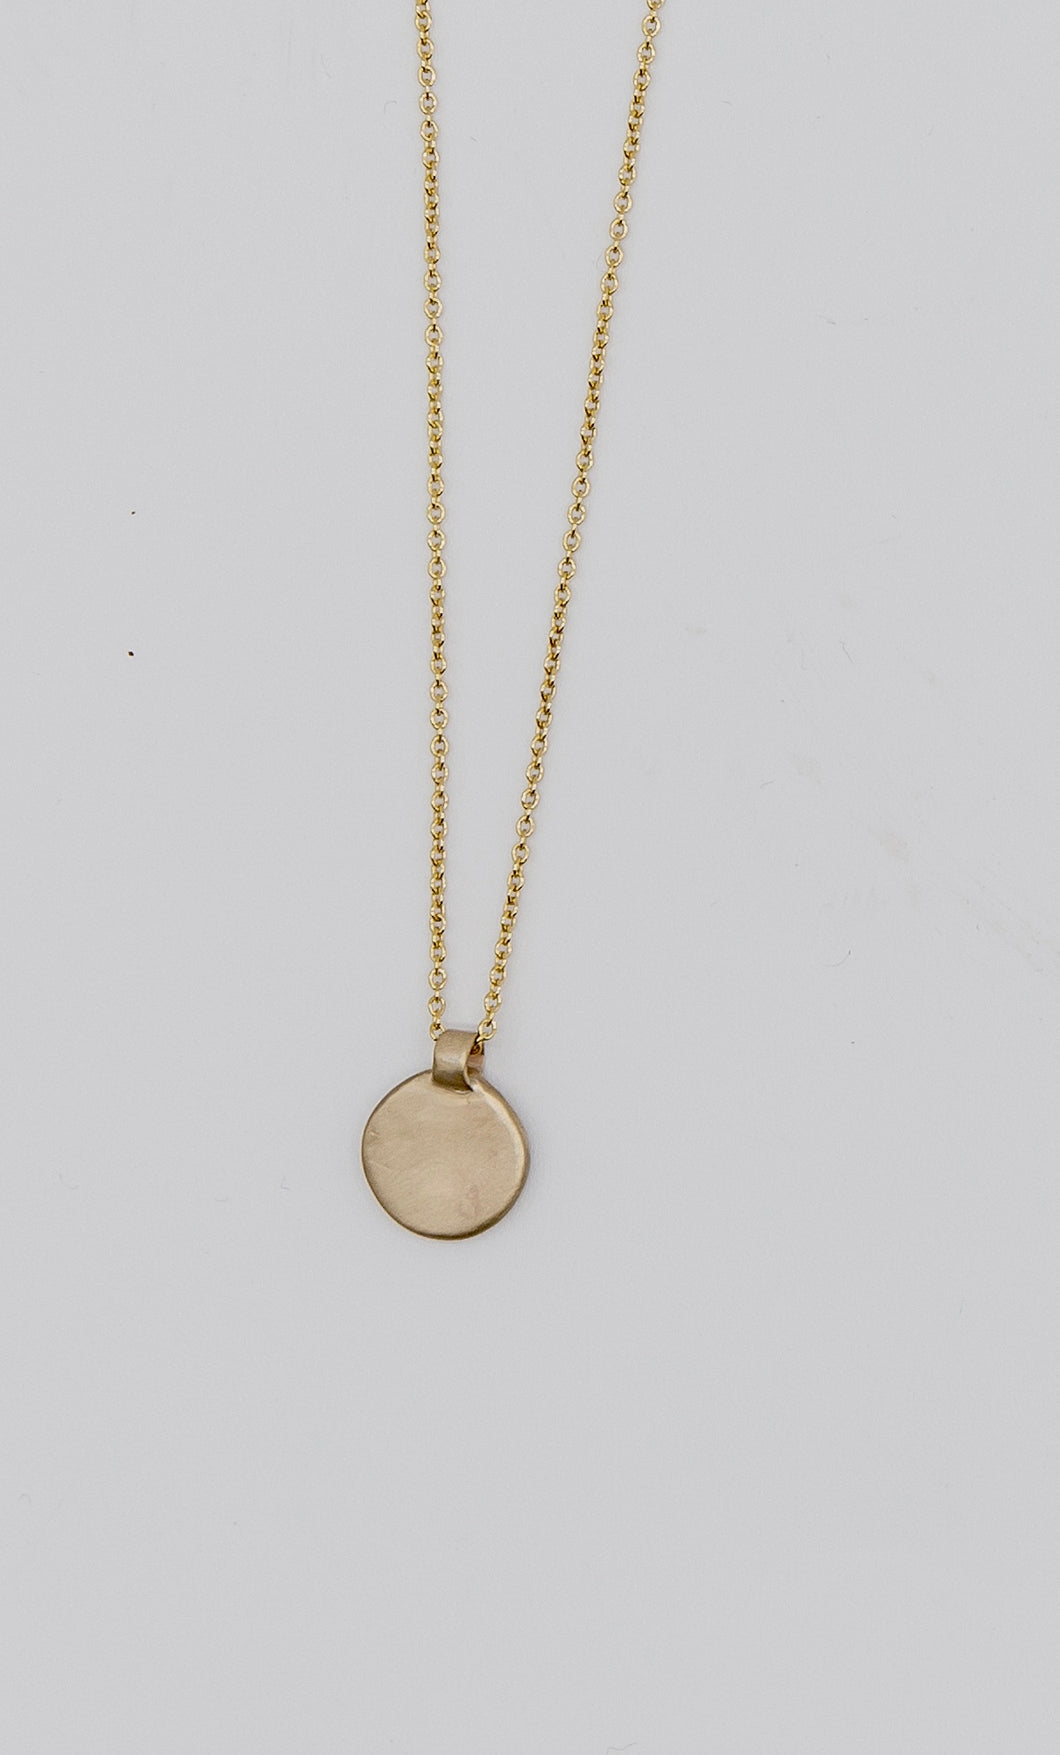 Celebration  Necklace 9K Gold - 10mm